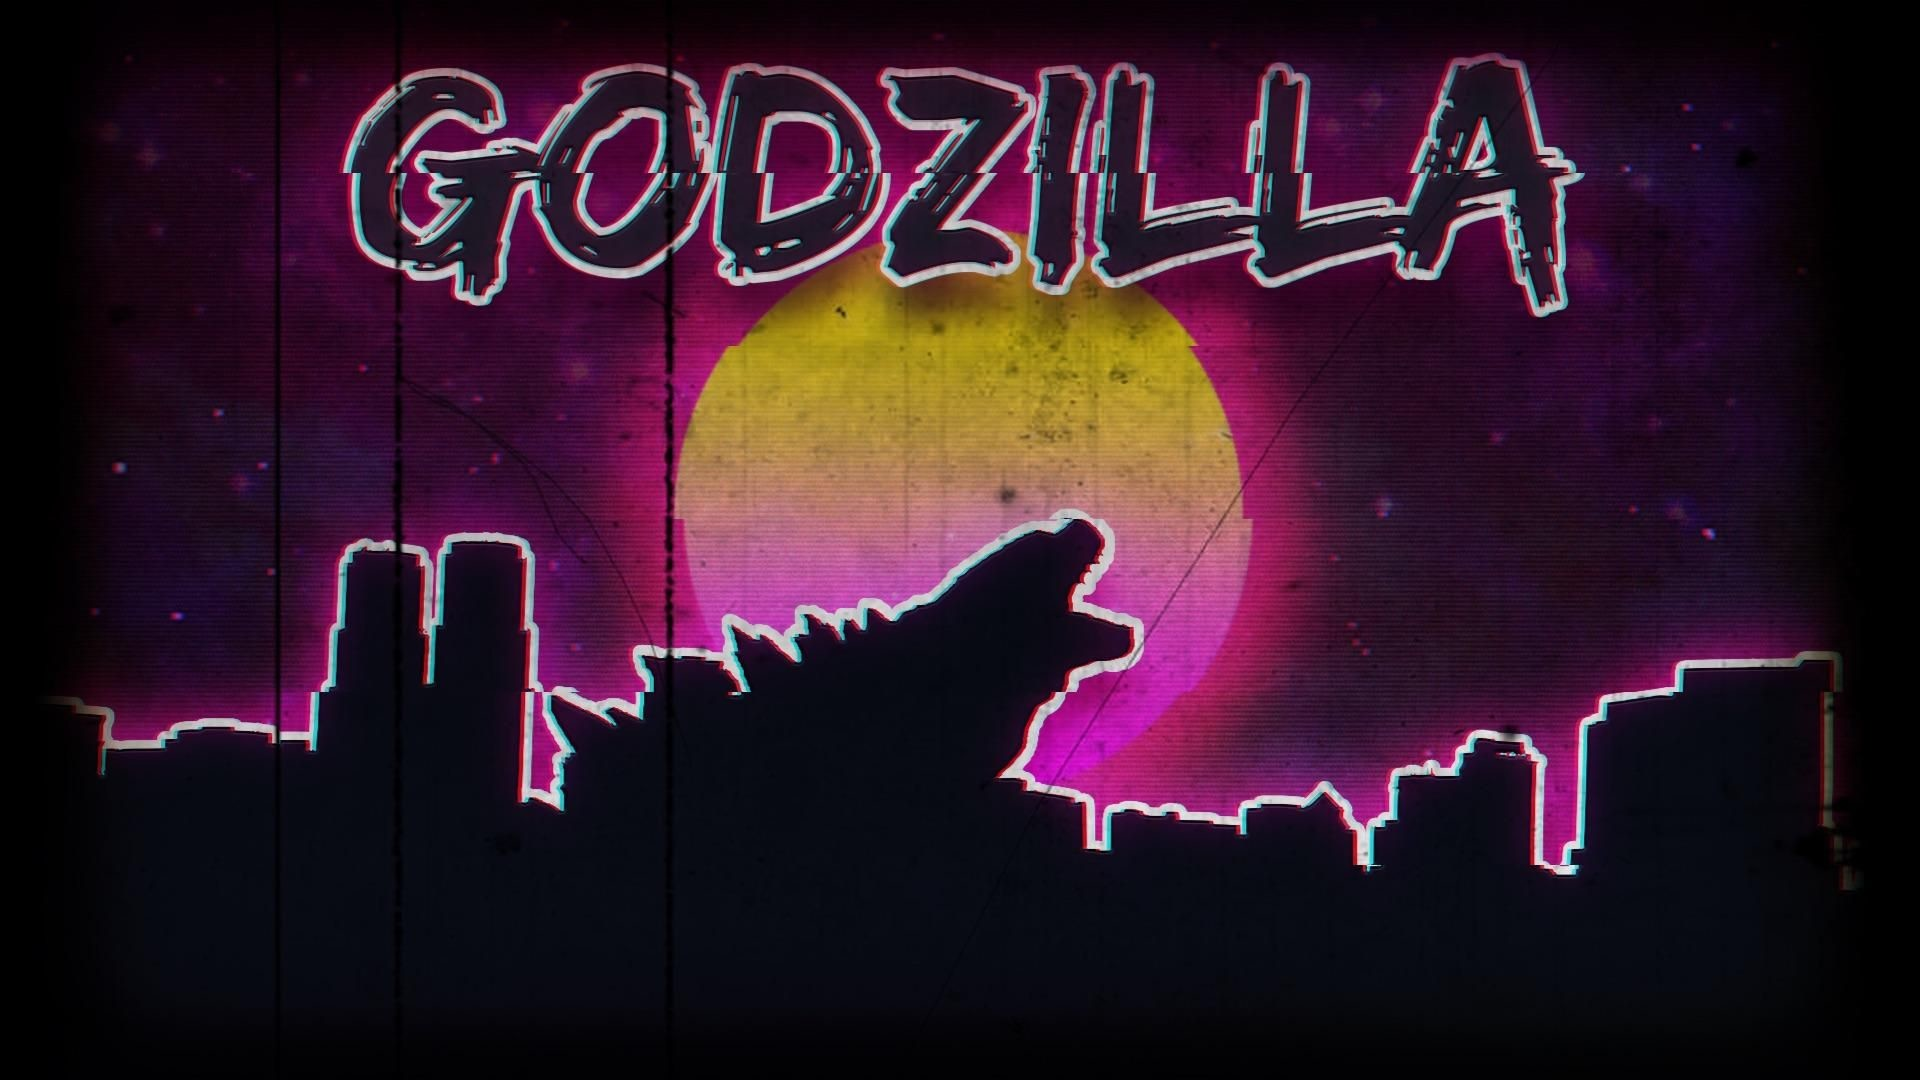 Res: 1920x1080, A retro 80s style godzilla wallpaper I threw together in photoshop.  []